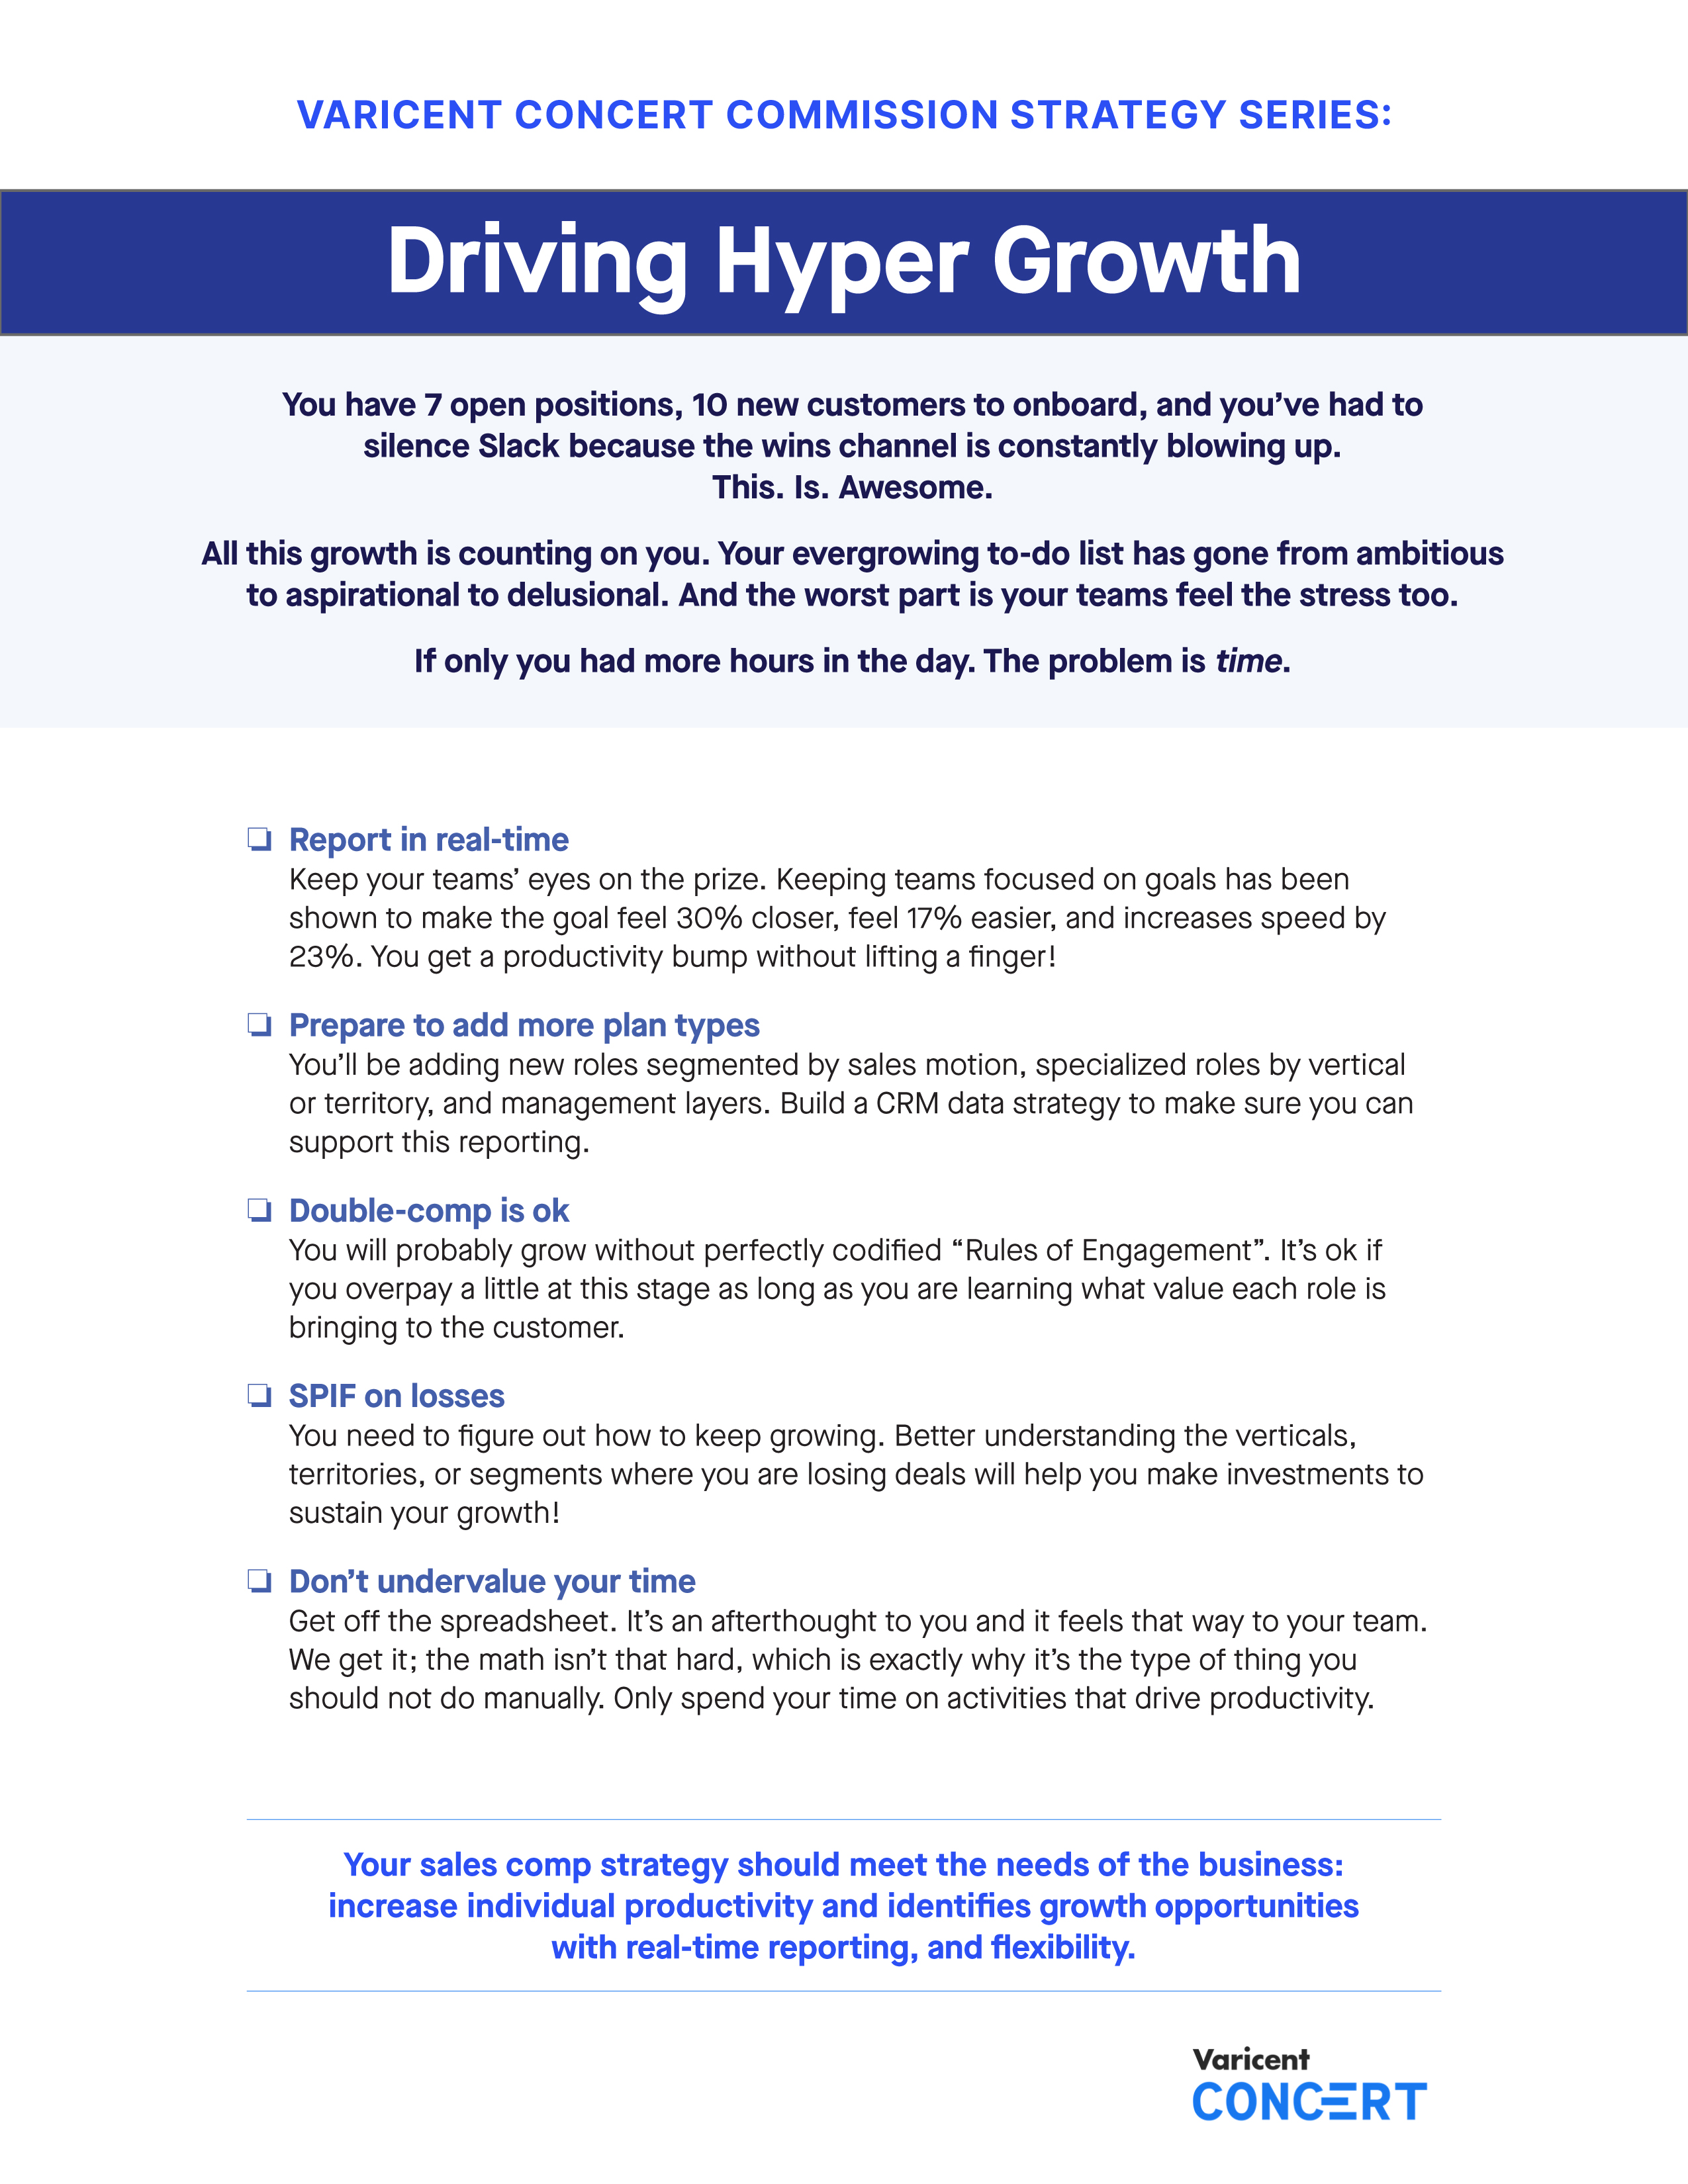 Commission Strategy Series - Driving Hyper Growth